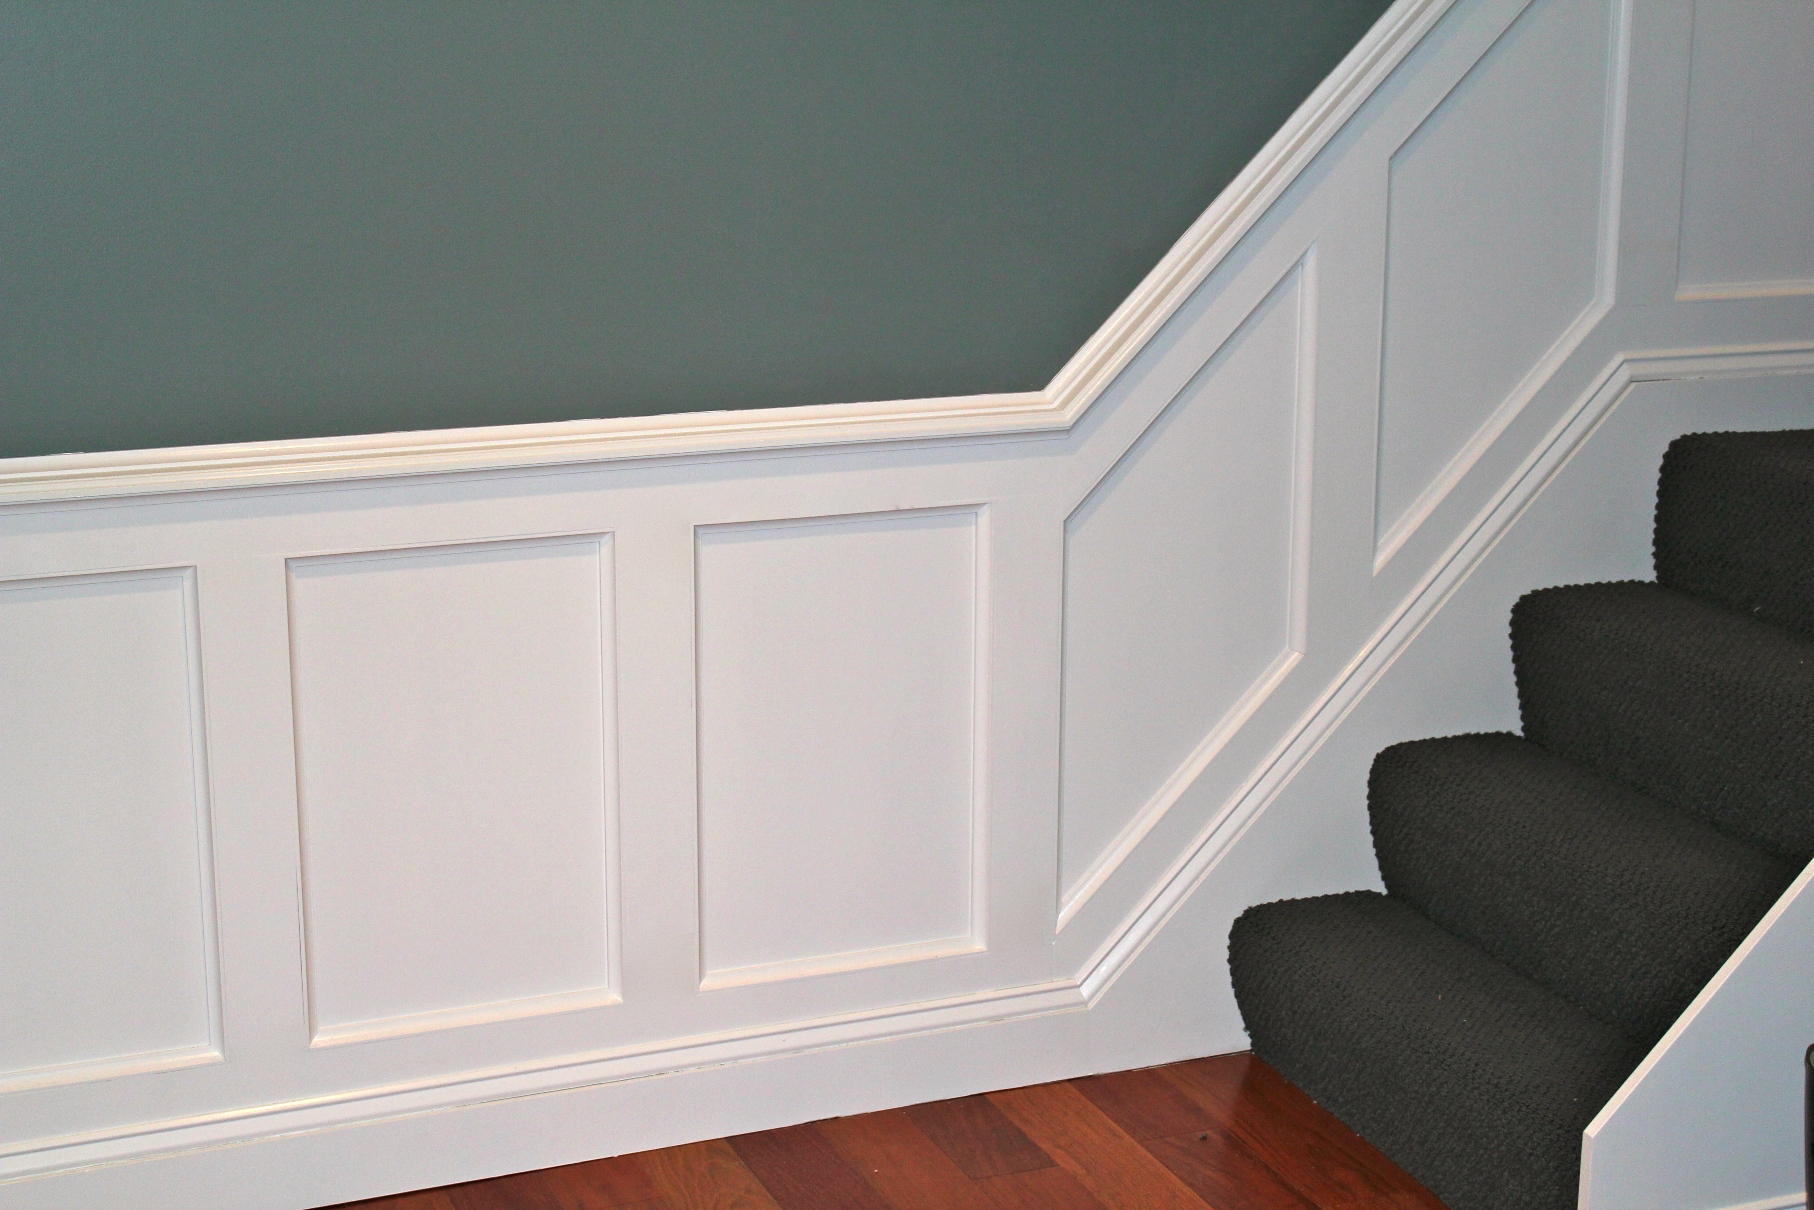 planning a wainscoting installation | pro construction guide